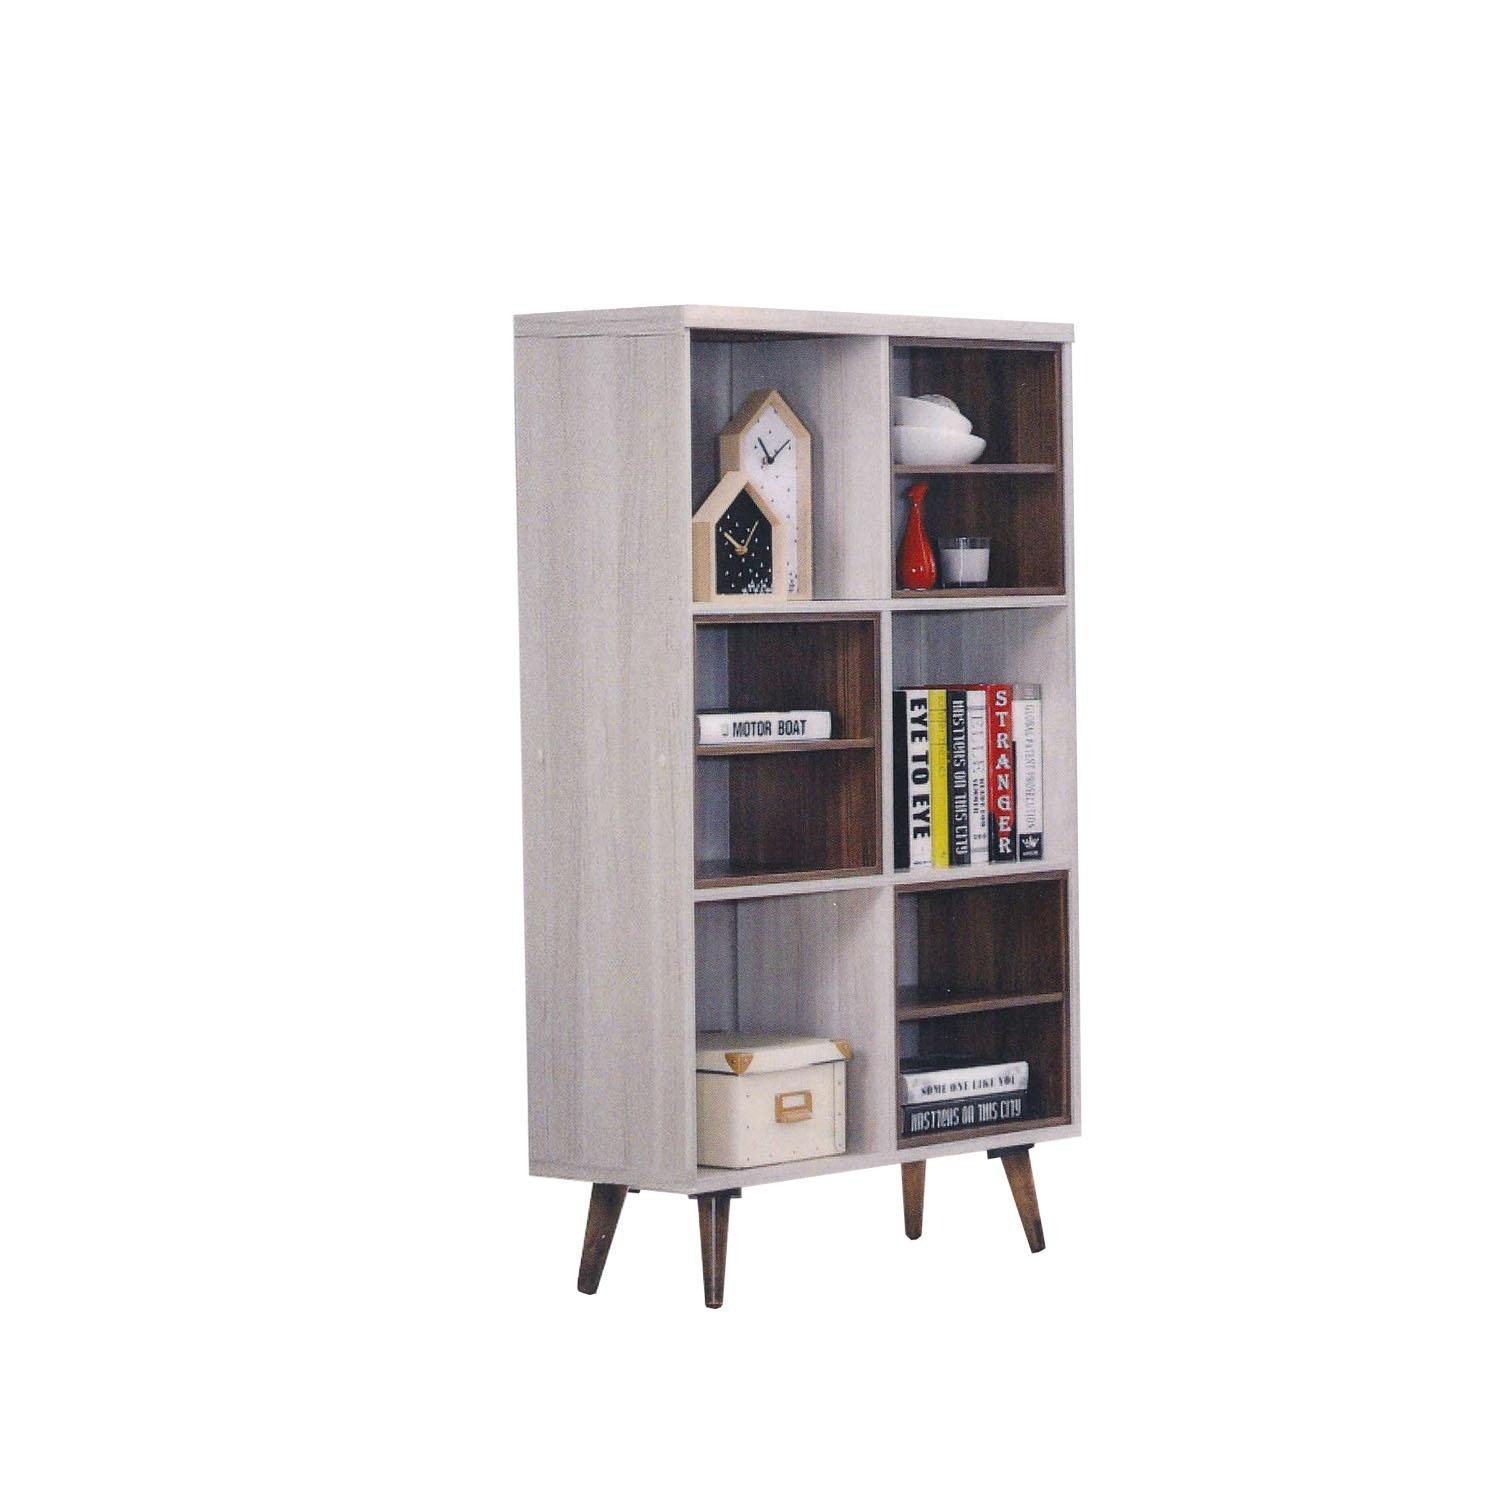 LIVING MALL_Nani 2 Book Shelf_FREE DELIVERY